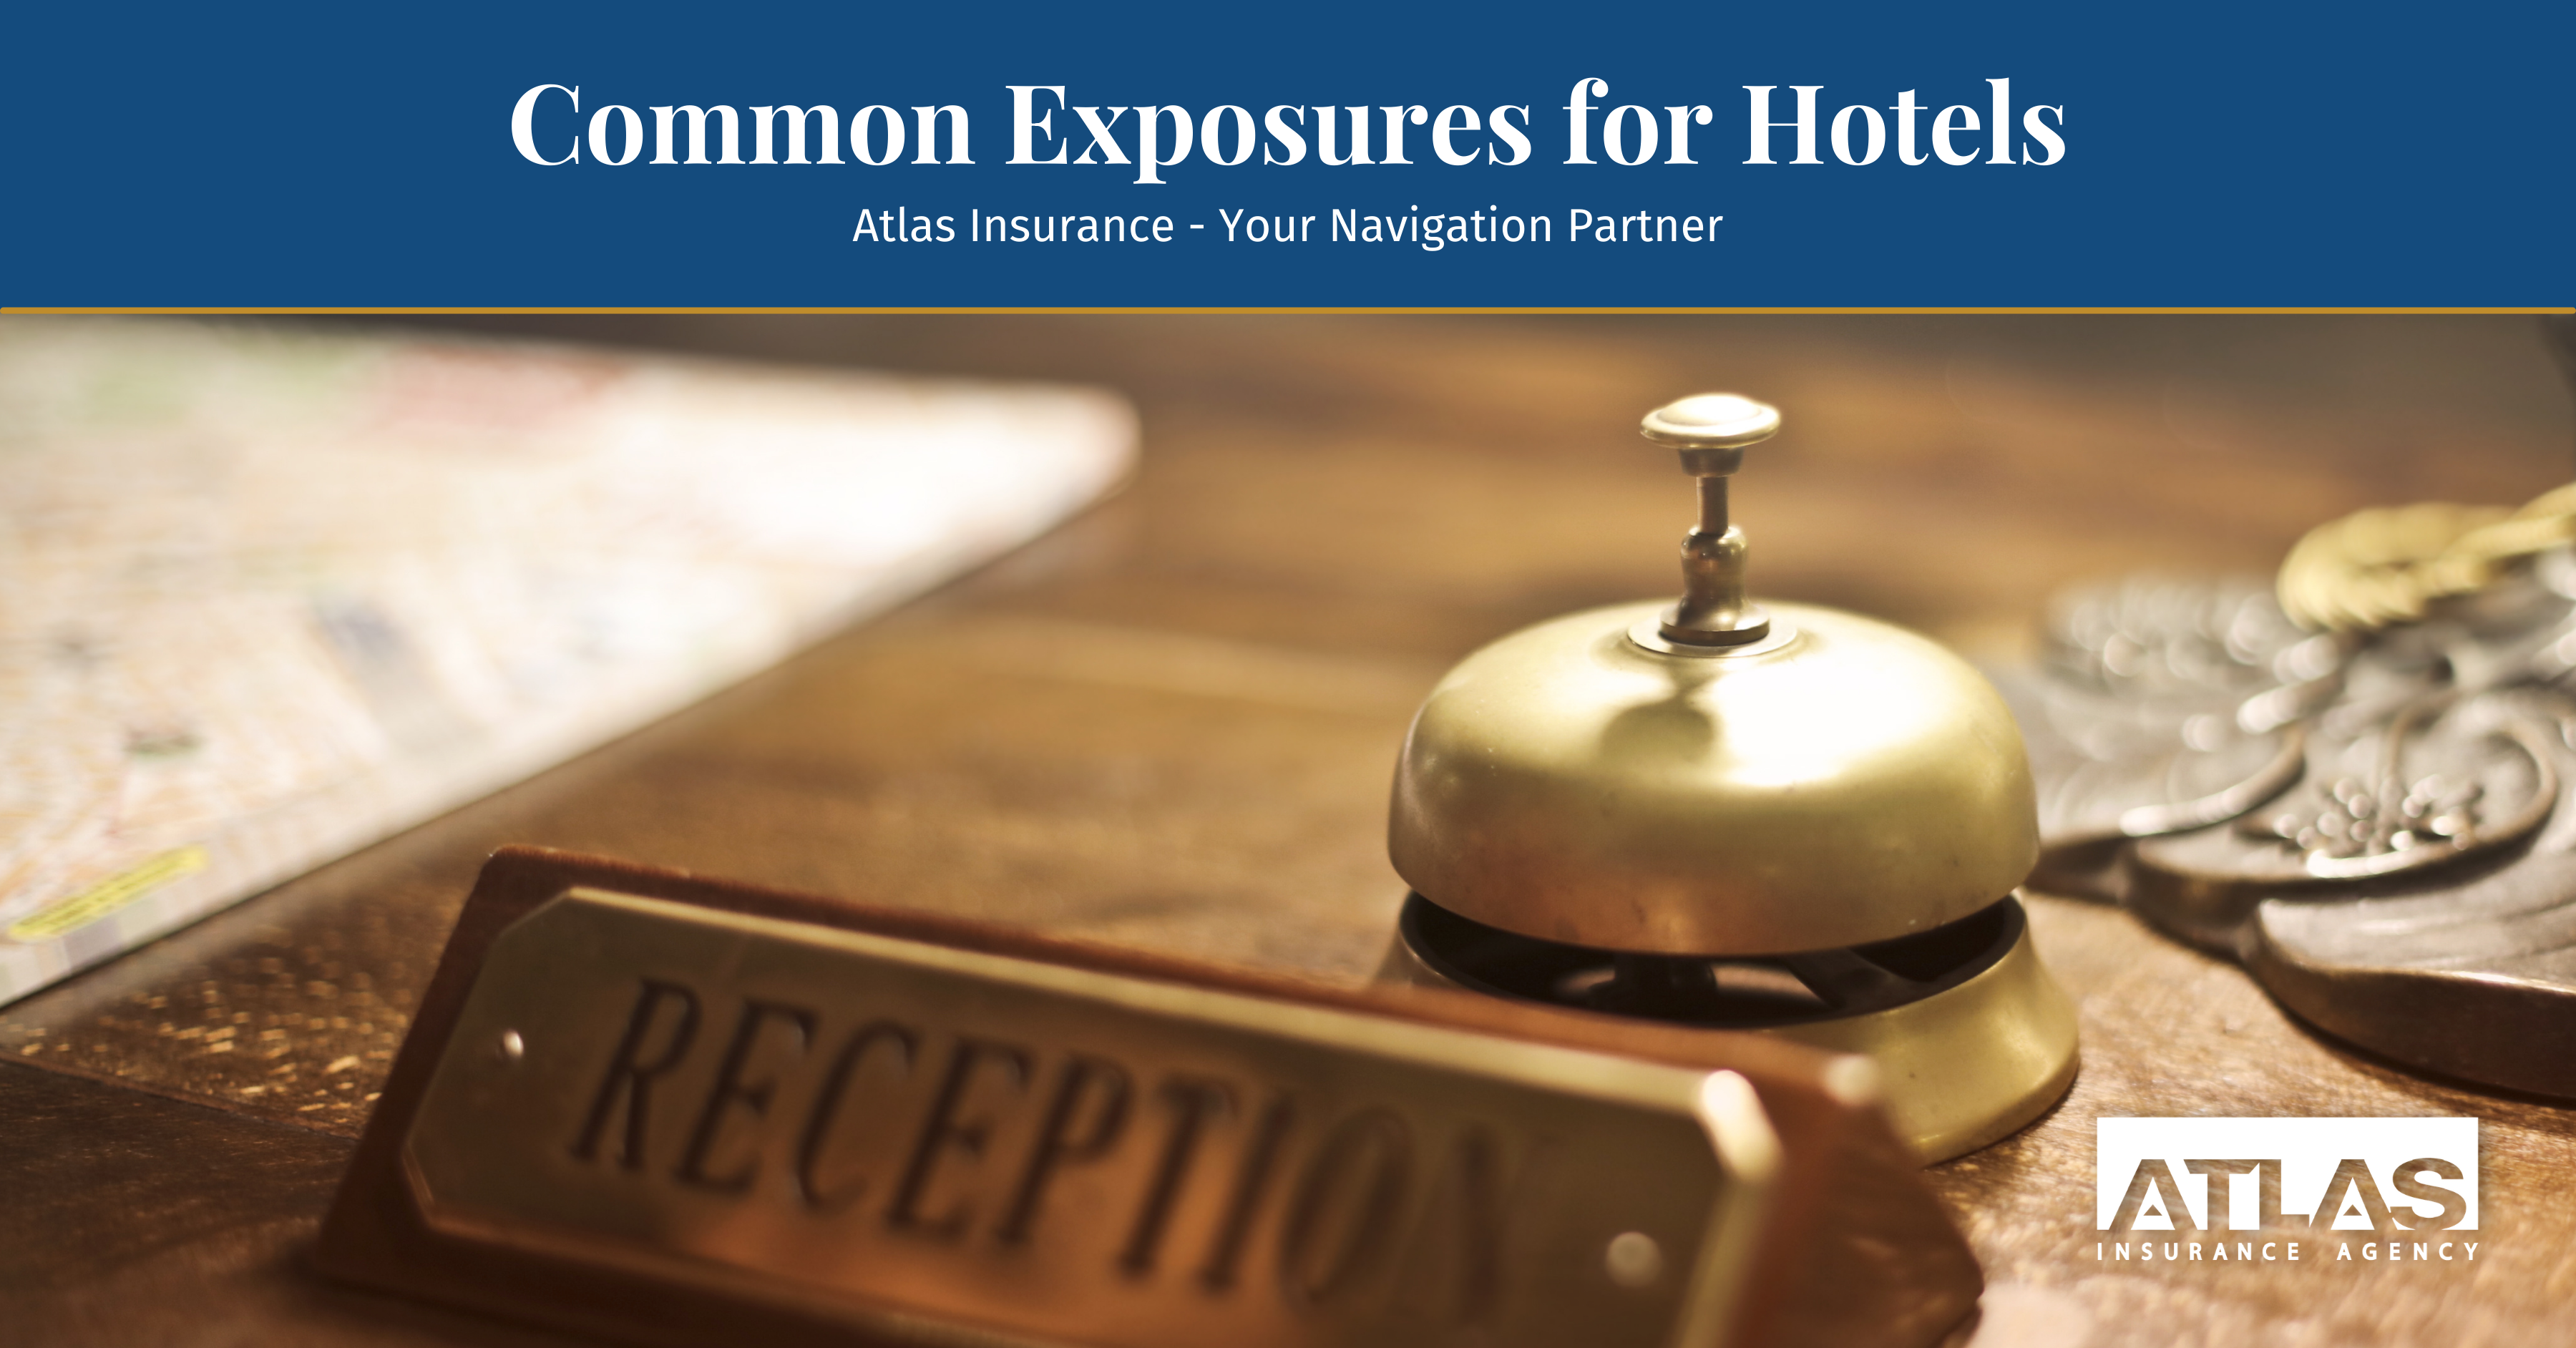 Common Exposures for Hotels